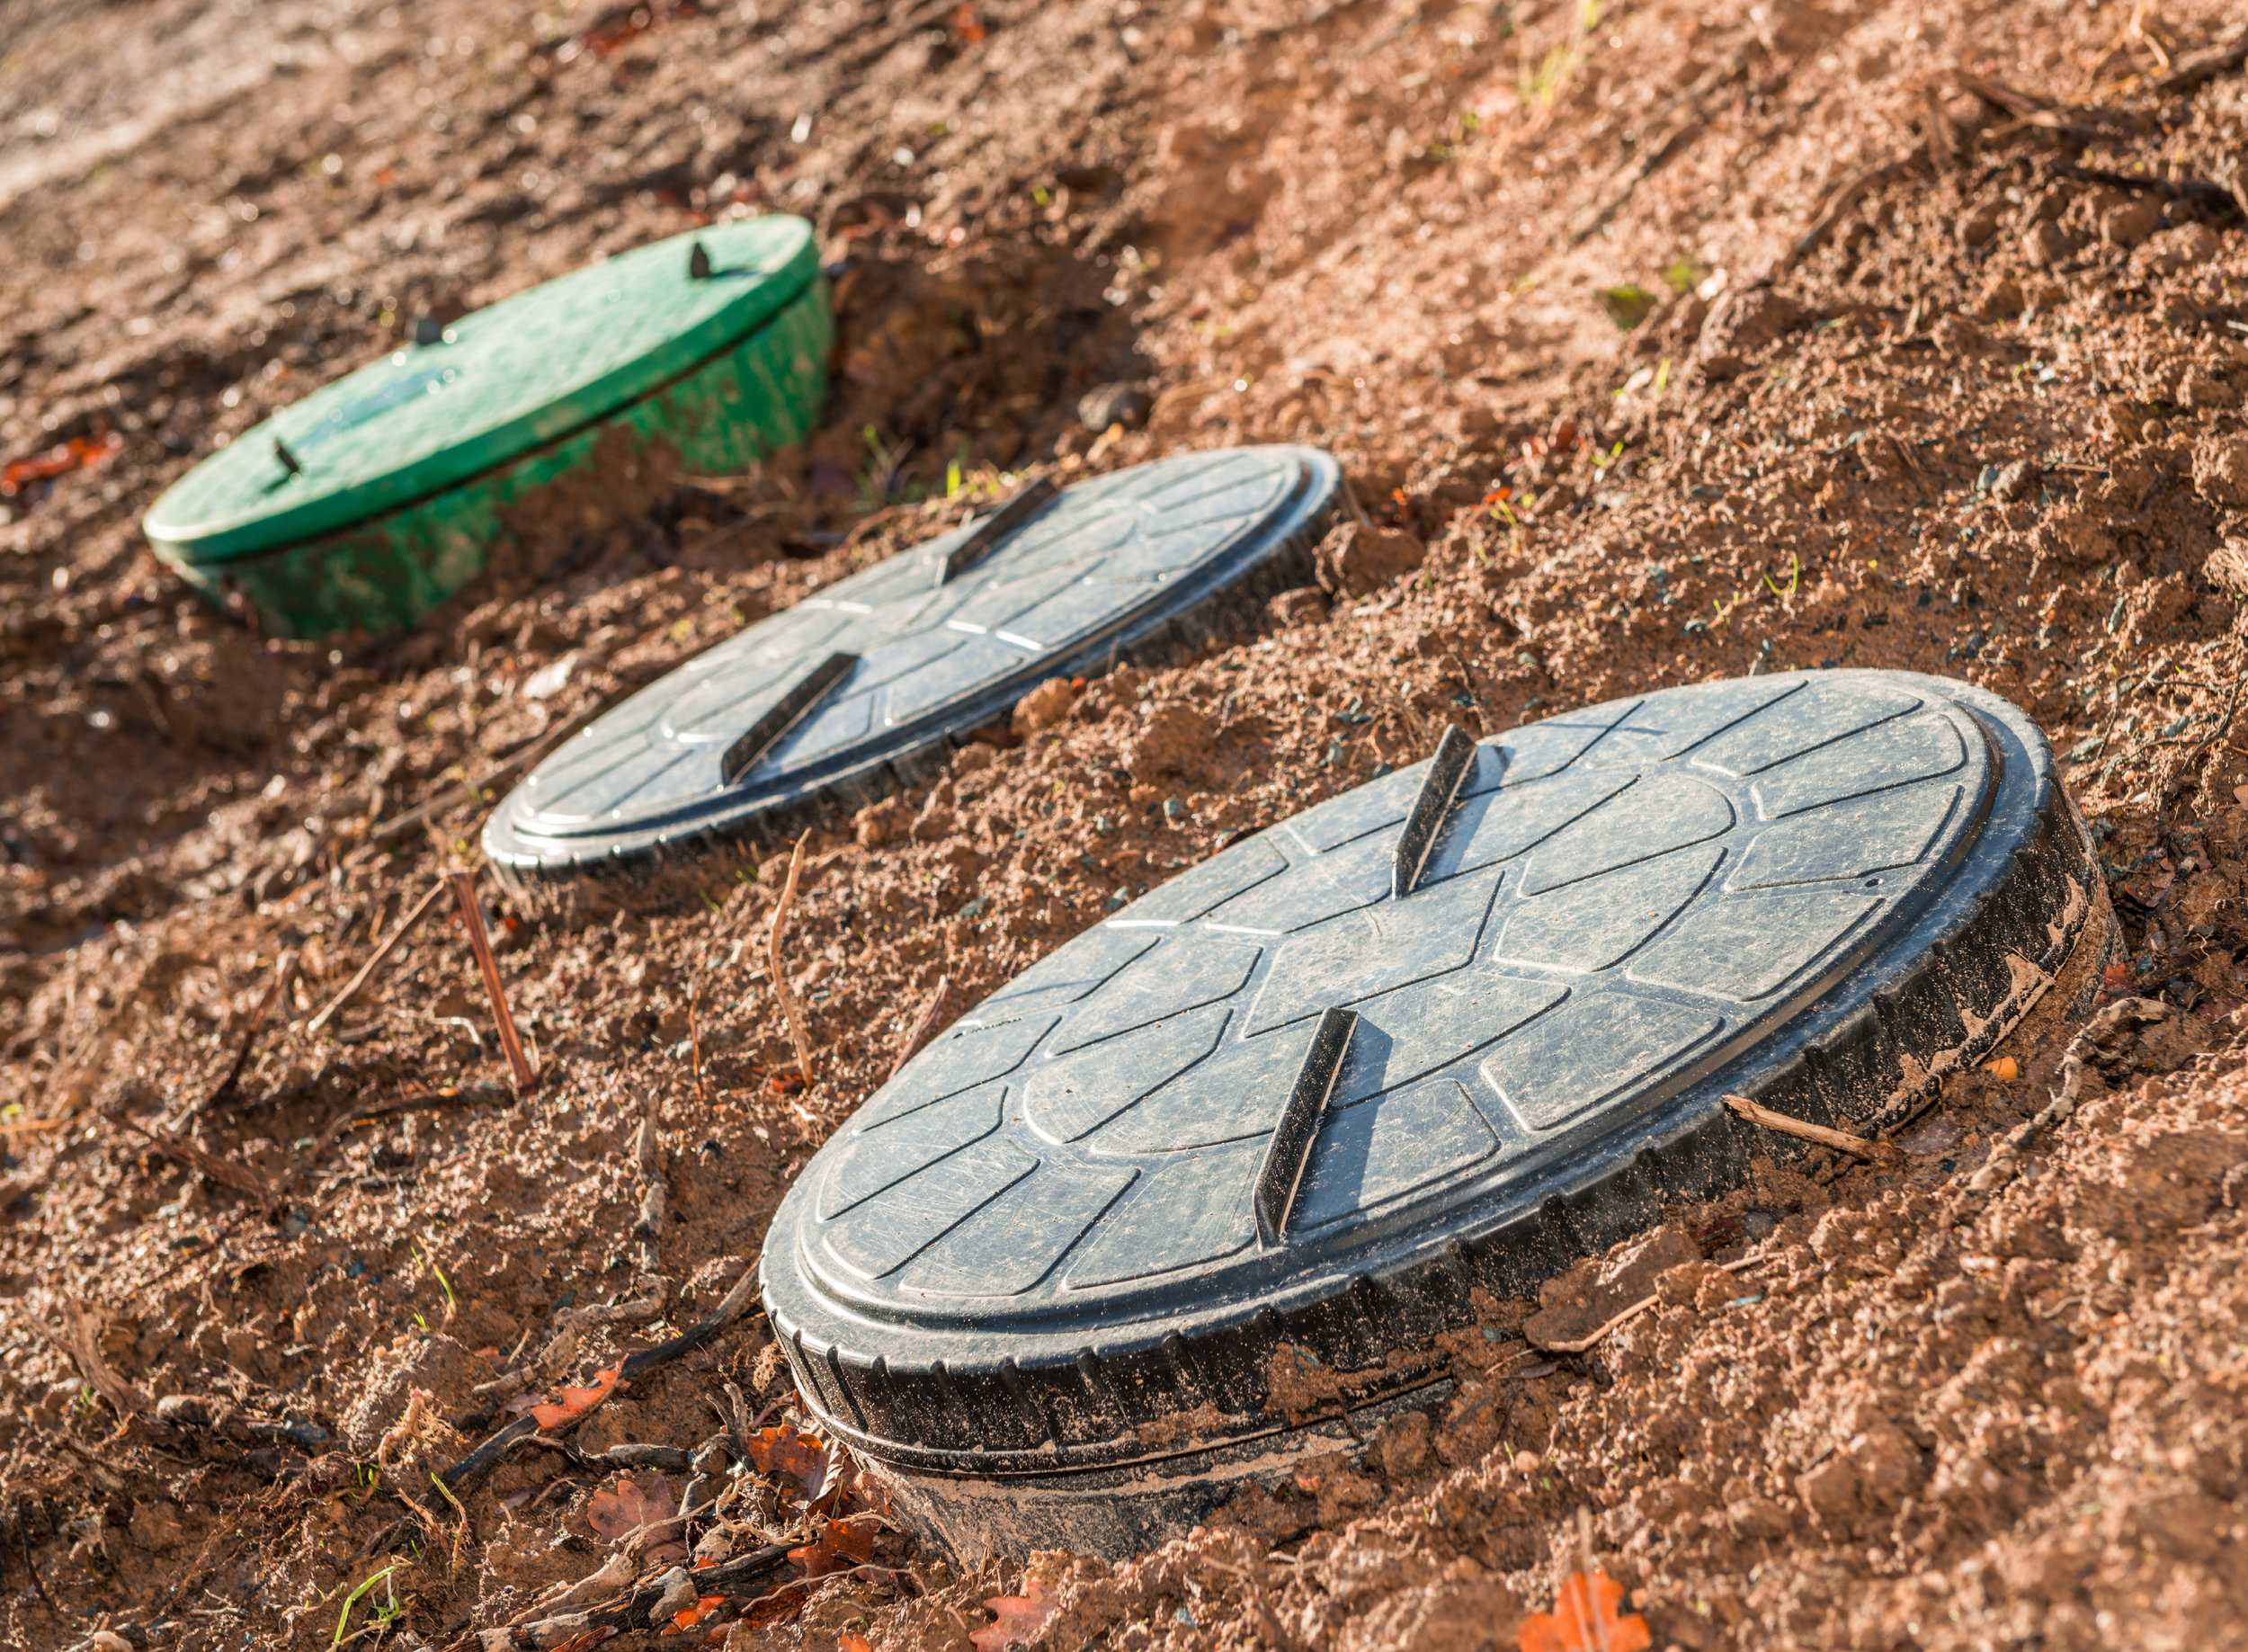 Septic Repair: How to Handle Septic Tank Flooding or Back Flooding